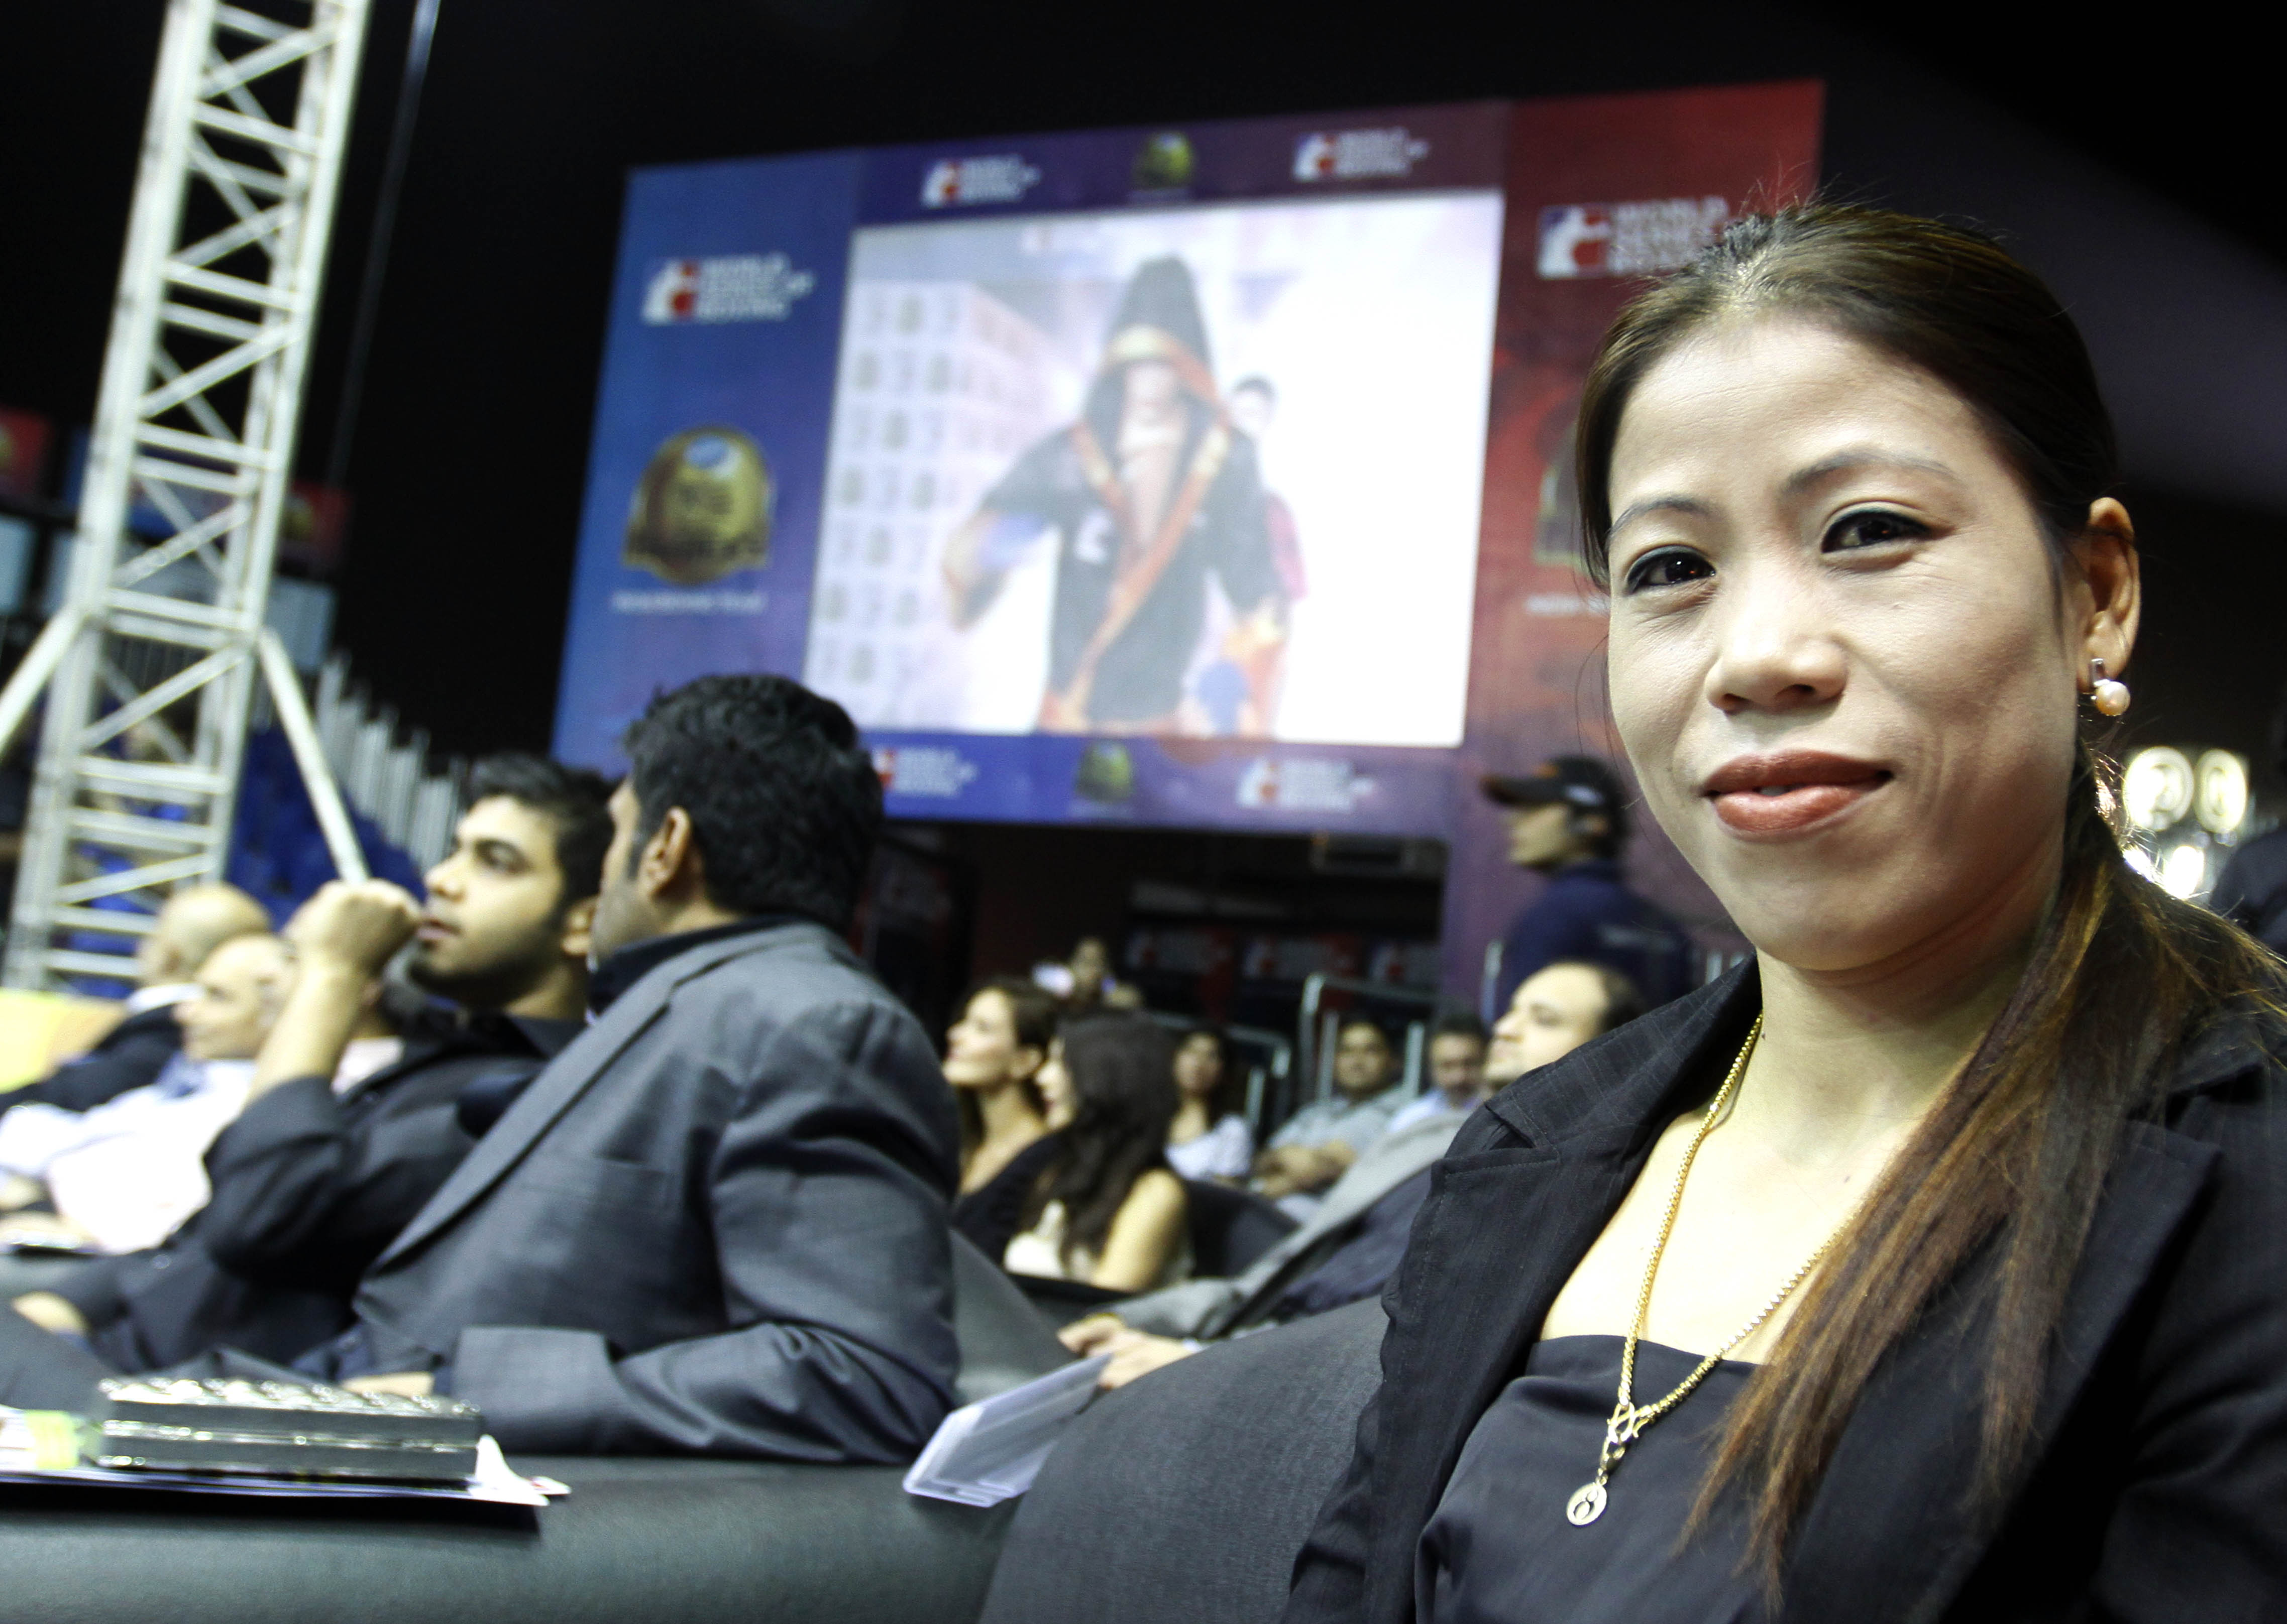 Indian women boxer Mary Kom during the World Series Boxing competition in Mumbai, India on March 2, 2012, where Venky's Mumbai Fighters boxers take on Baku Fires. The Indian franchise, owned by TransStadia Boxing India Pvt. Ltd., is part of 12 teams from across the world competing in WSB, an event organised by the boxing world body, AIBA. (Srinivas Akella/SOLARIS IMAGES)